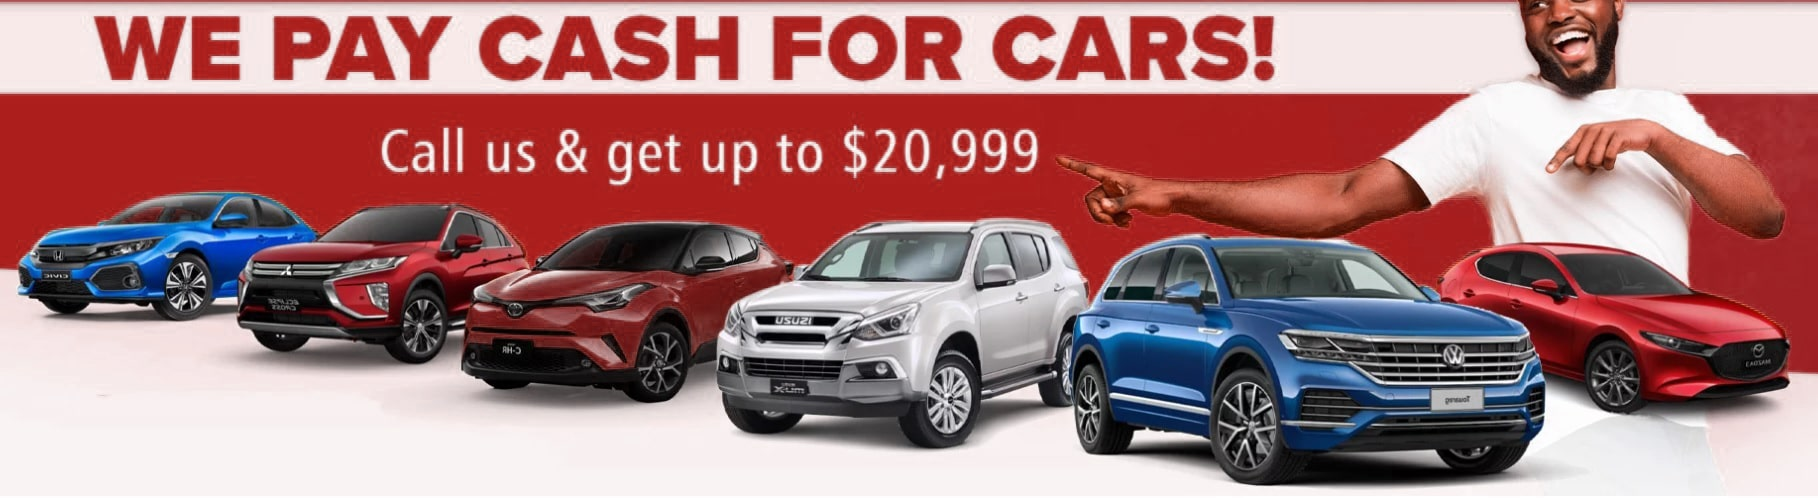 Cash for Cars Somers